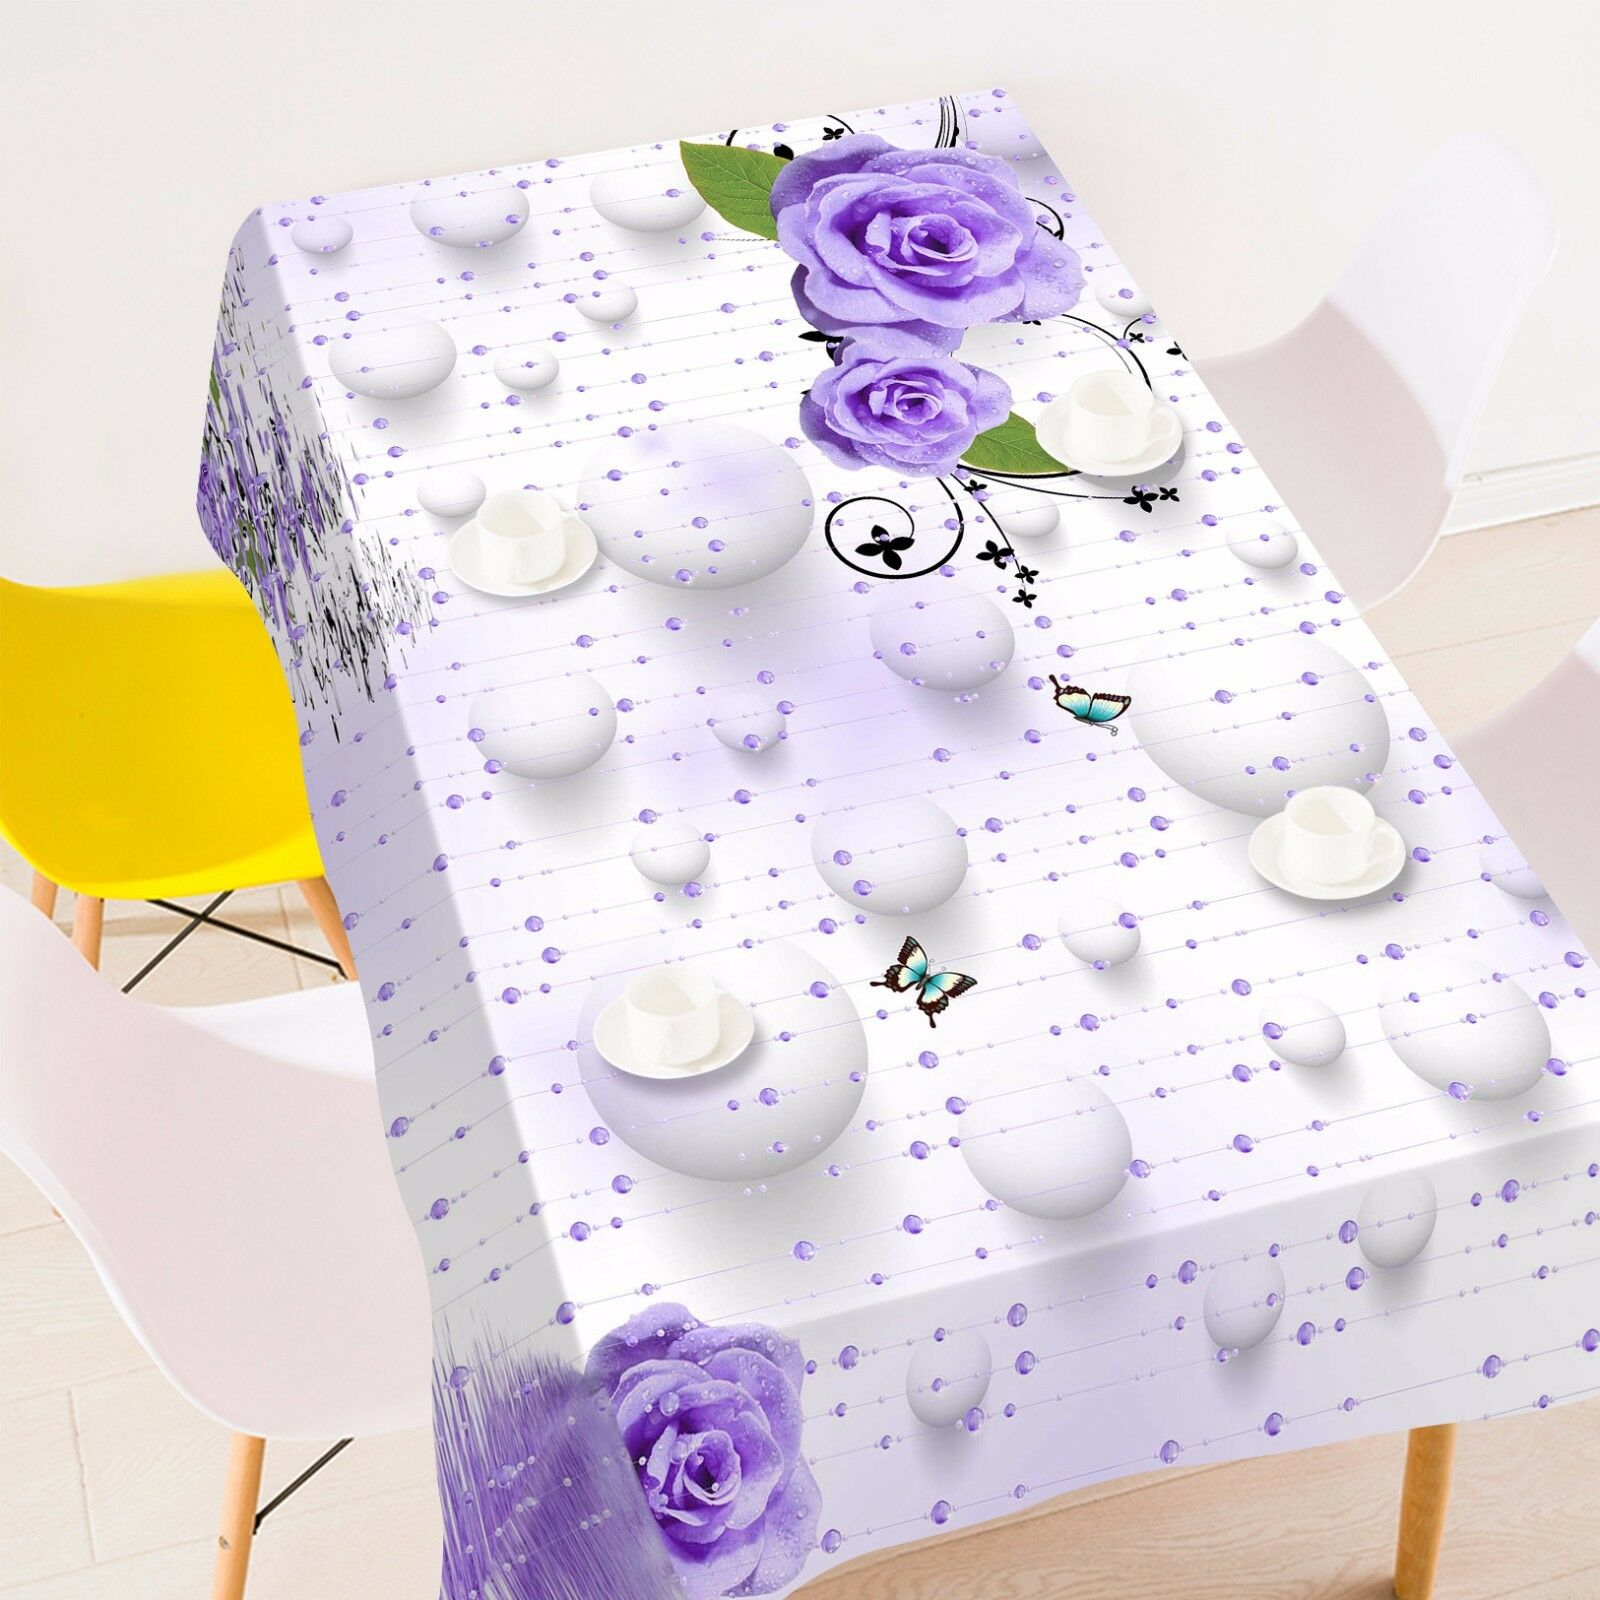 3D Flowers 898 Tablecloth Table Cover Cloth Birthday Party Event AJ WALLPAPER AU